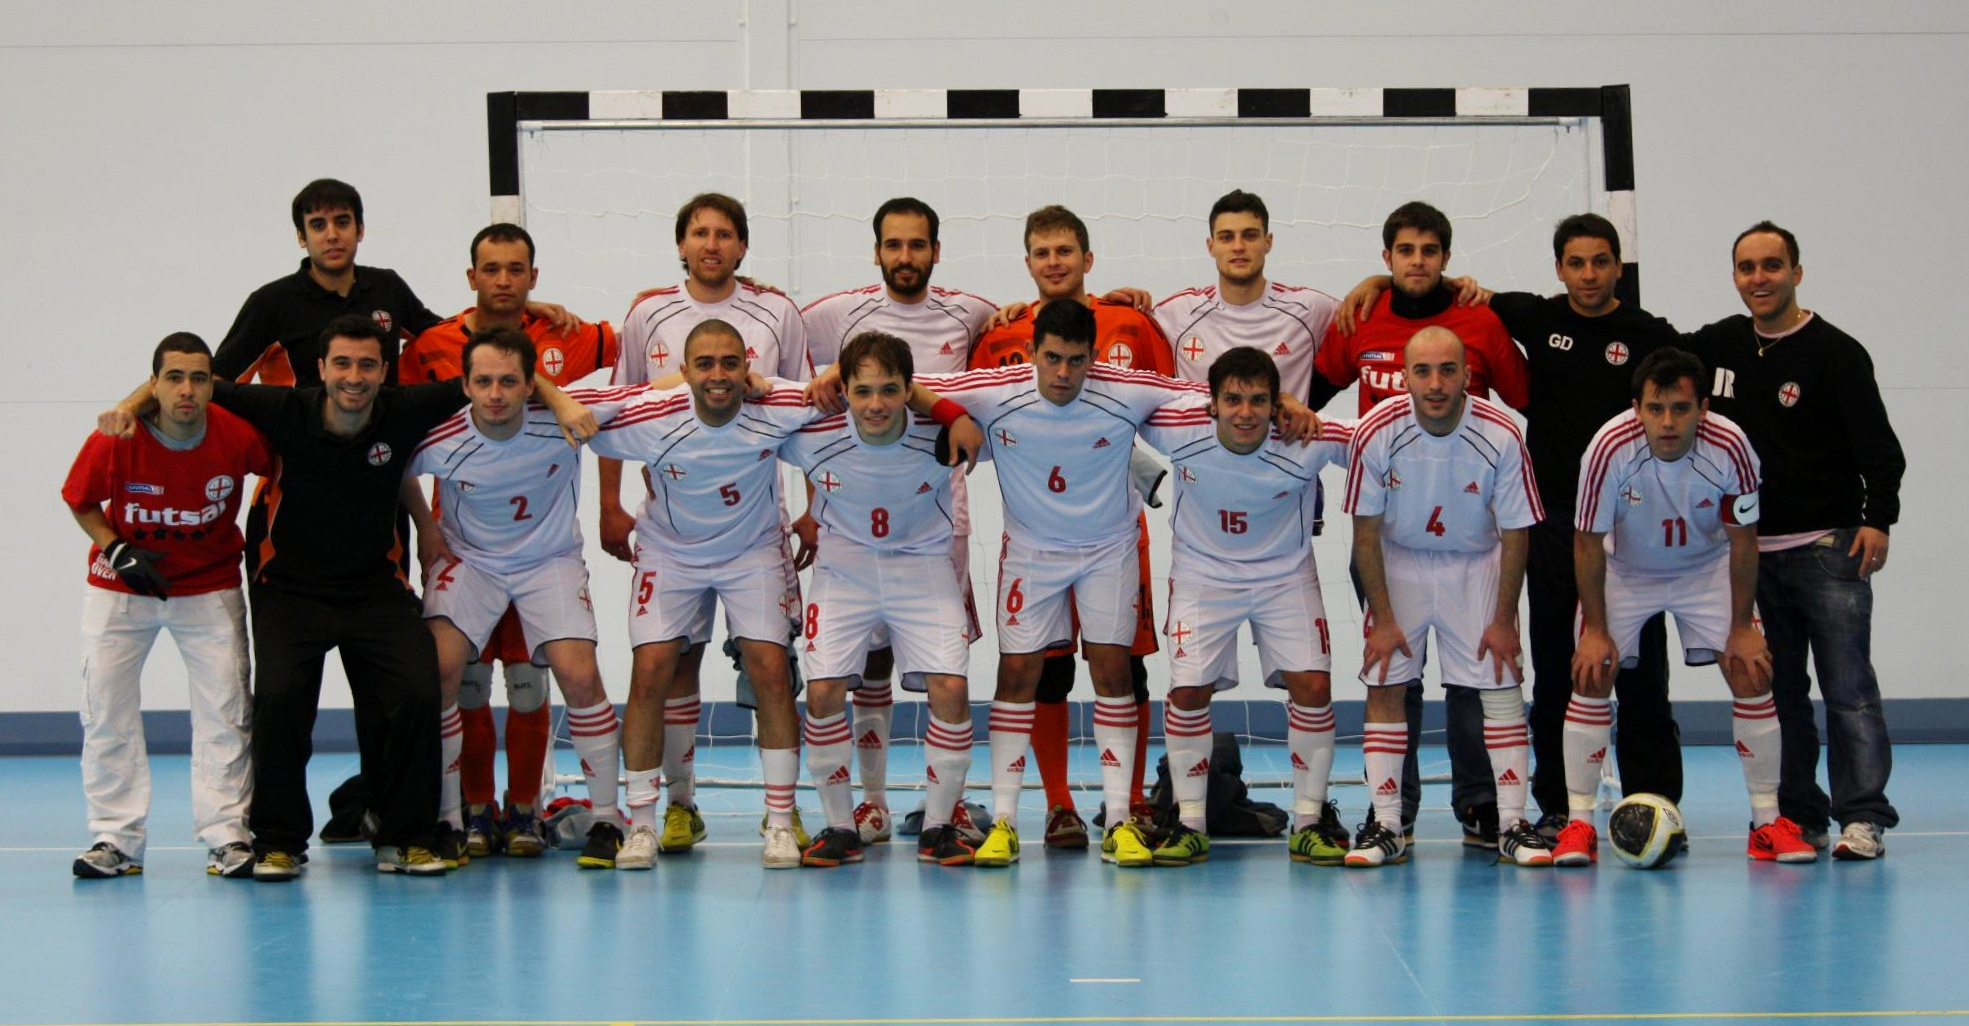 Hoy conocemos al London United Futsal Club